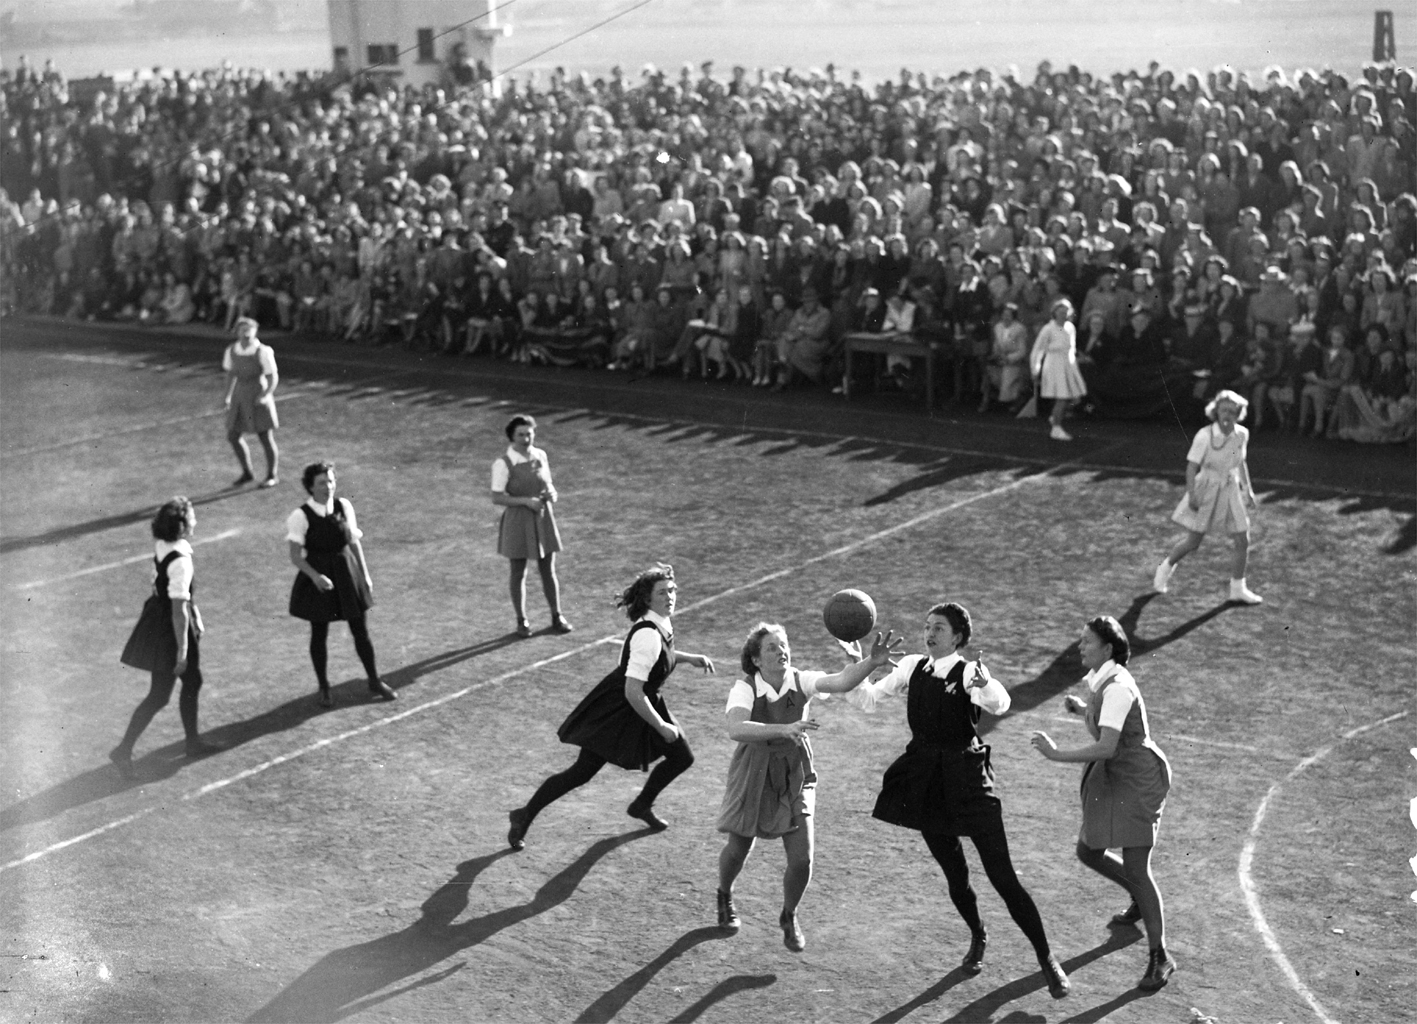 1948, Australia v. New Zealand. Game One of the test series played in front of a full crowd at Forbey Park Racecourse, Dunedin.